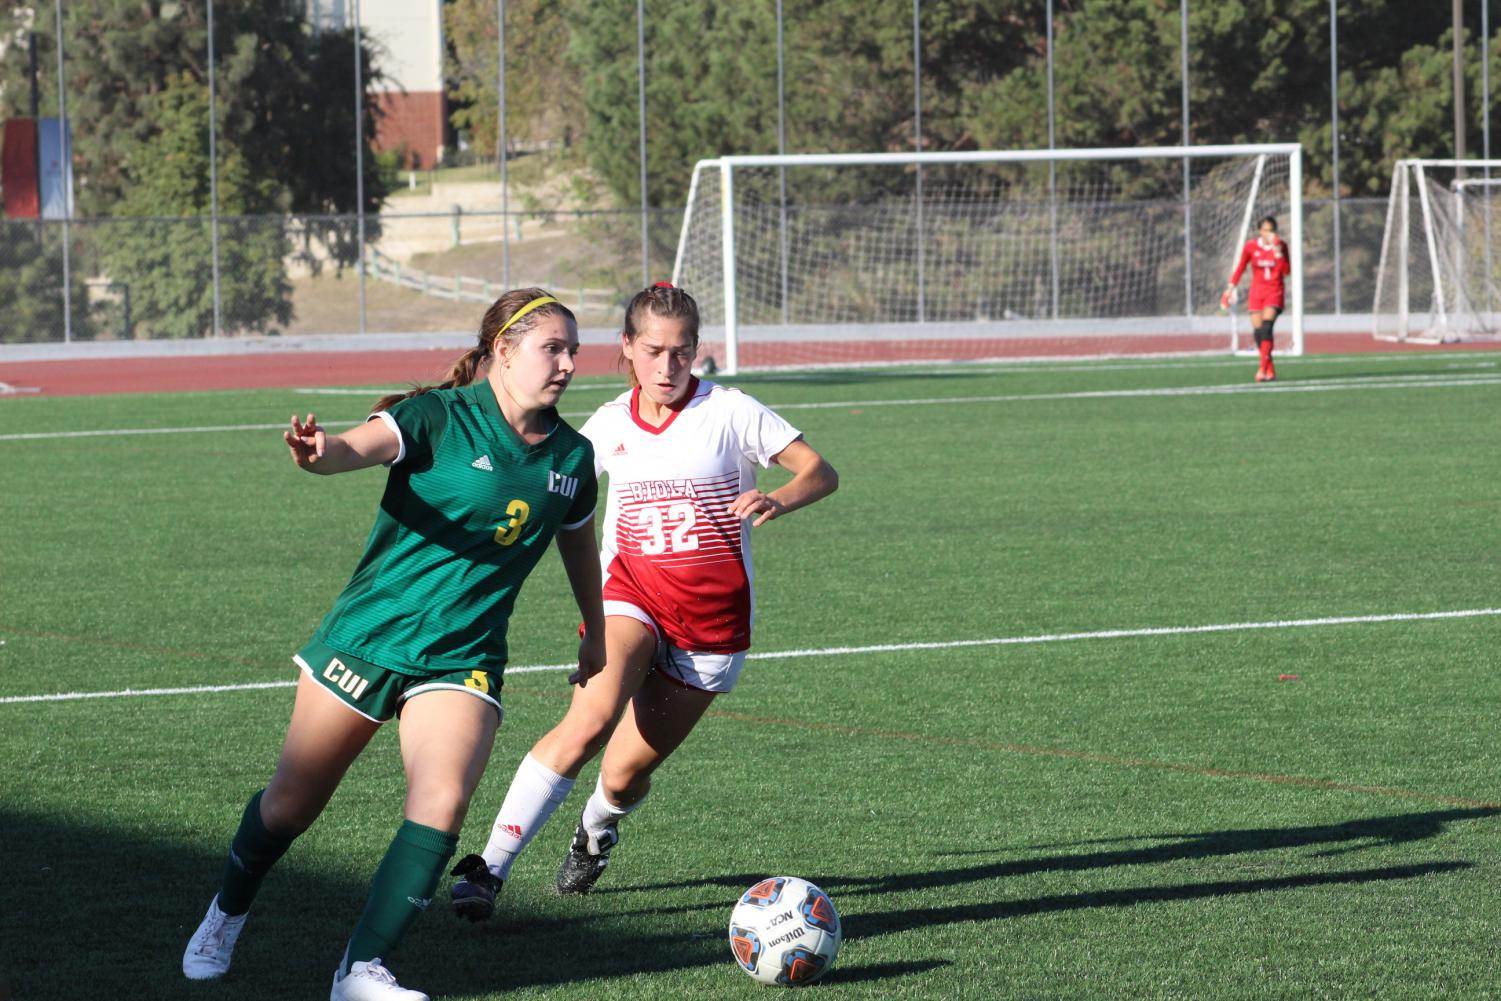 Freshman defender Madi Reeves moves in, in attempt to take the ball from her opponent.  During the October 2, 2019 match against Concordia University Irvine.